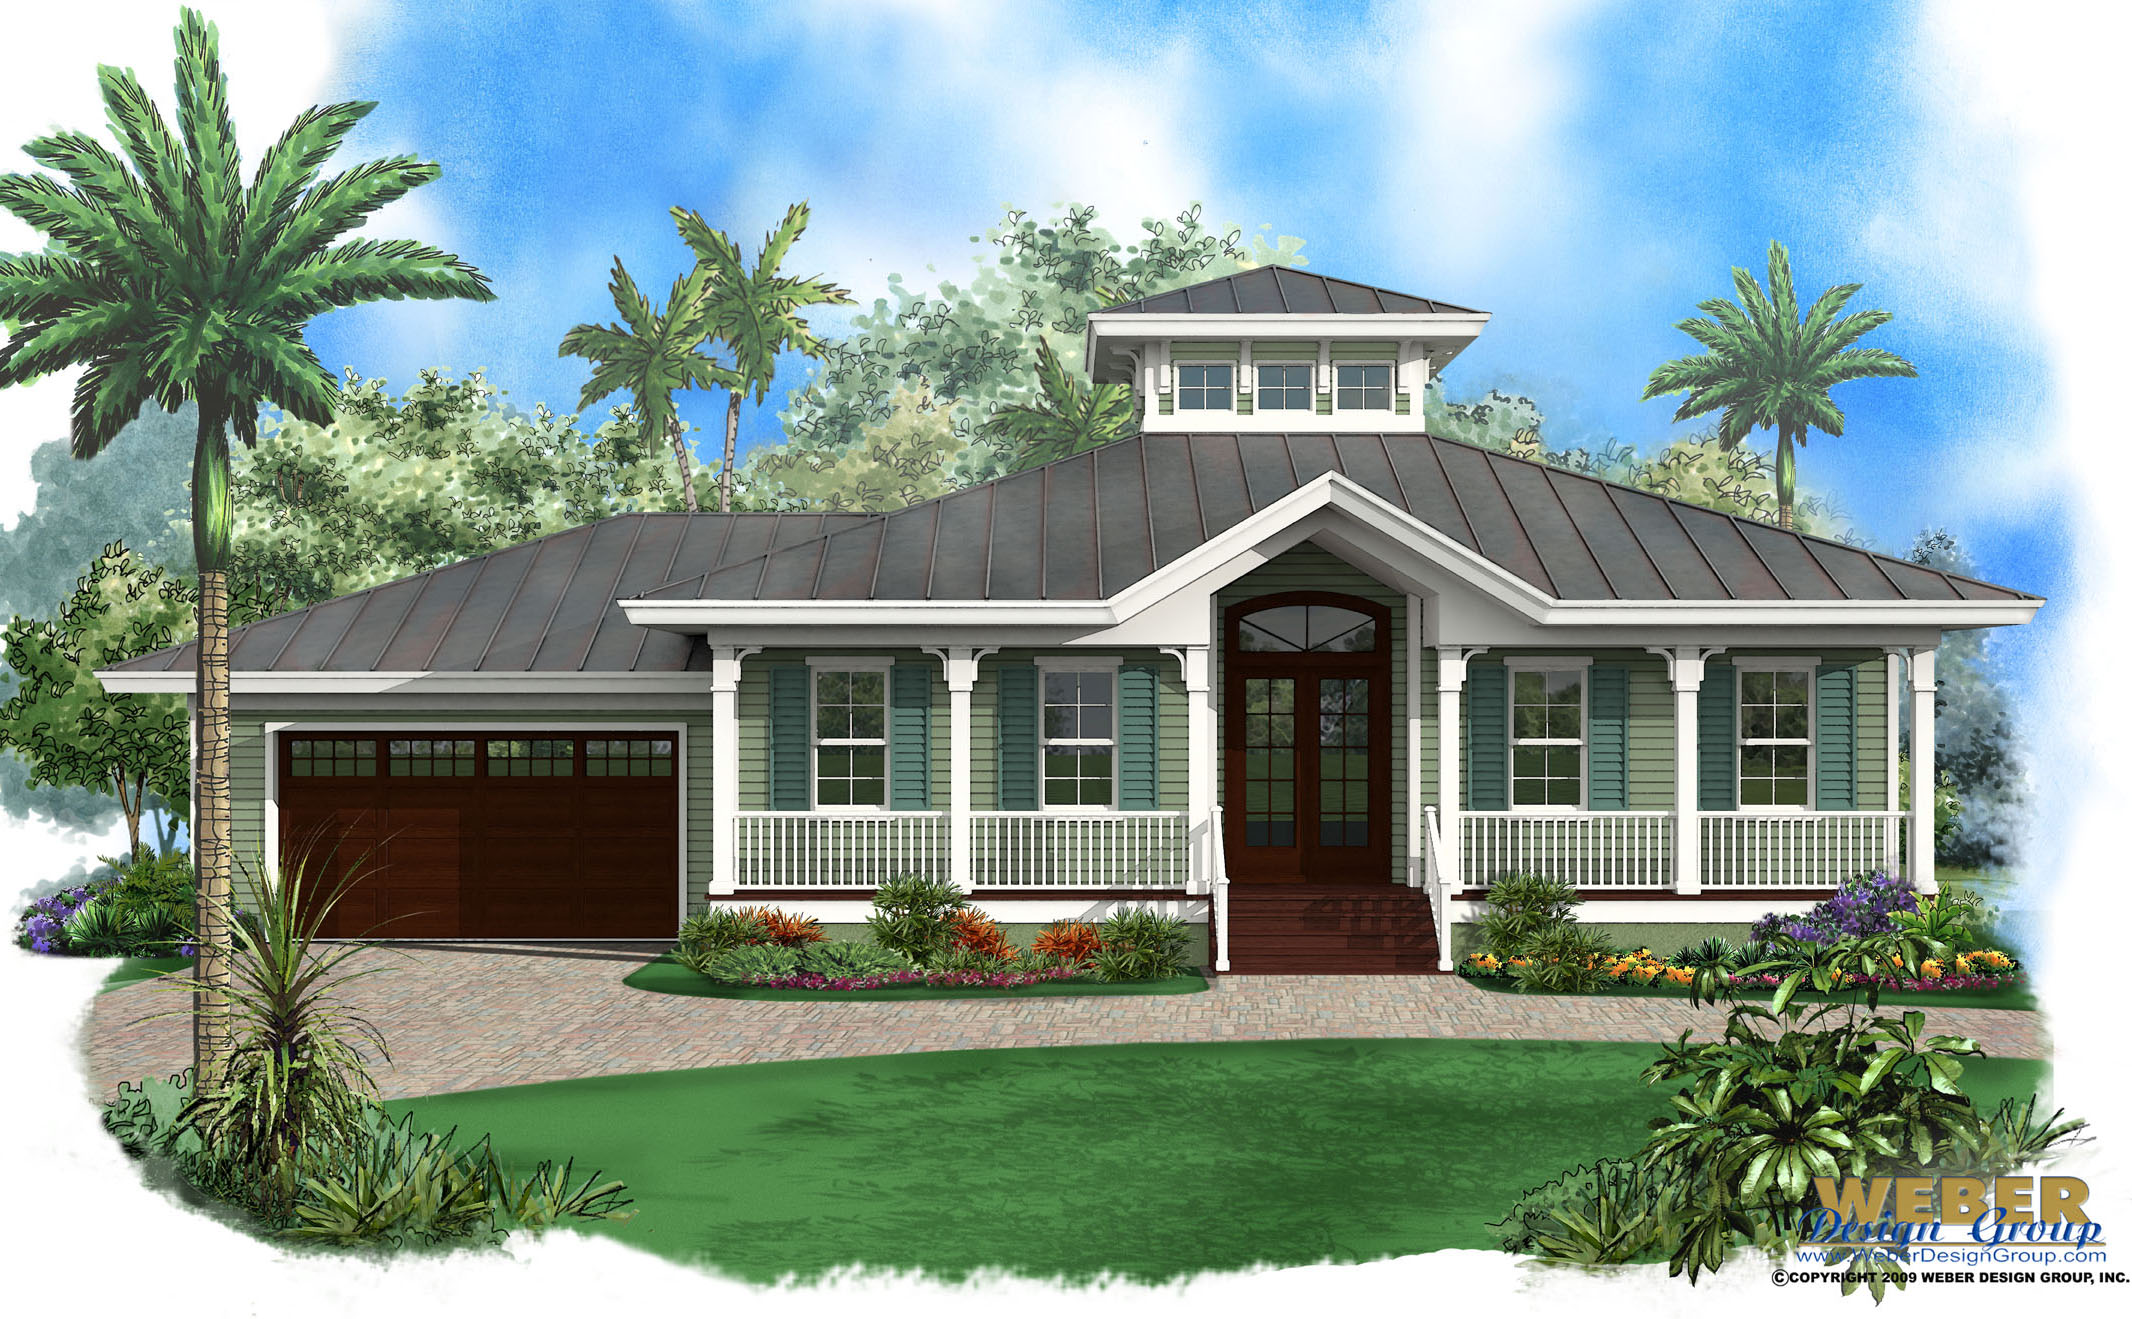 Key west house plans key west island style home floor plans for Florida house designs